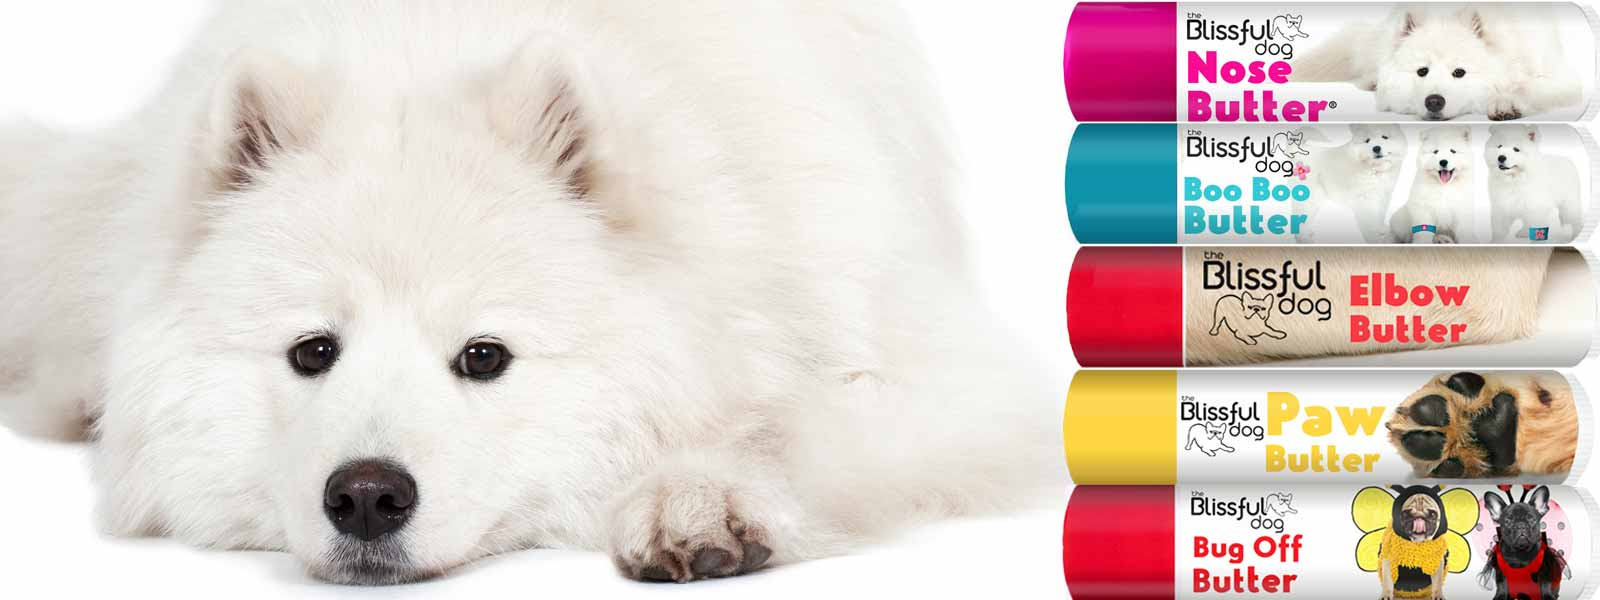 samoyed dog skin